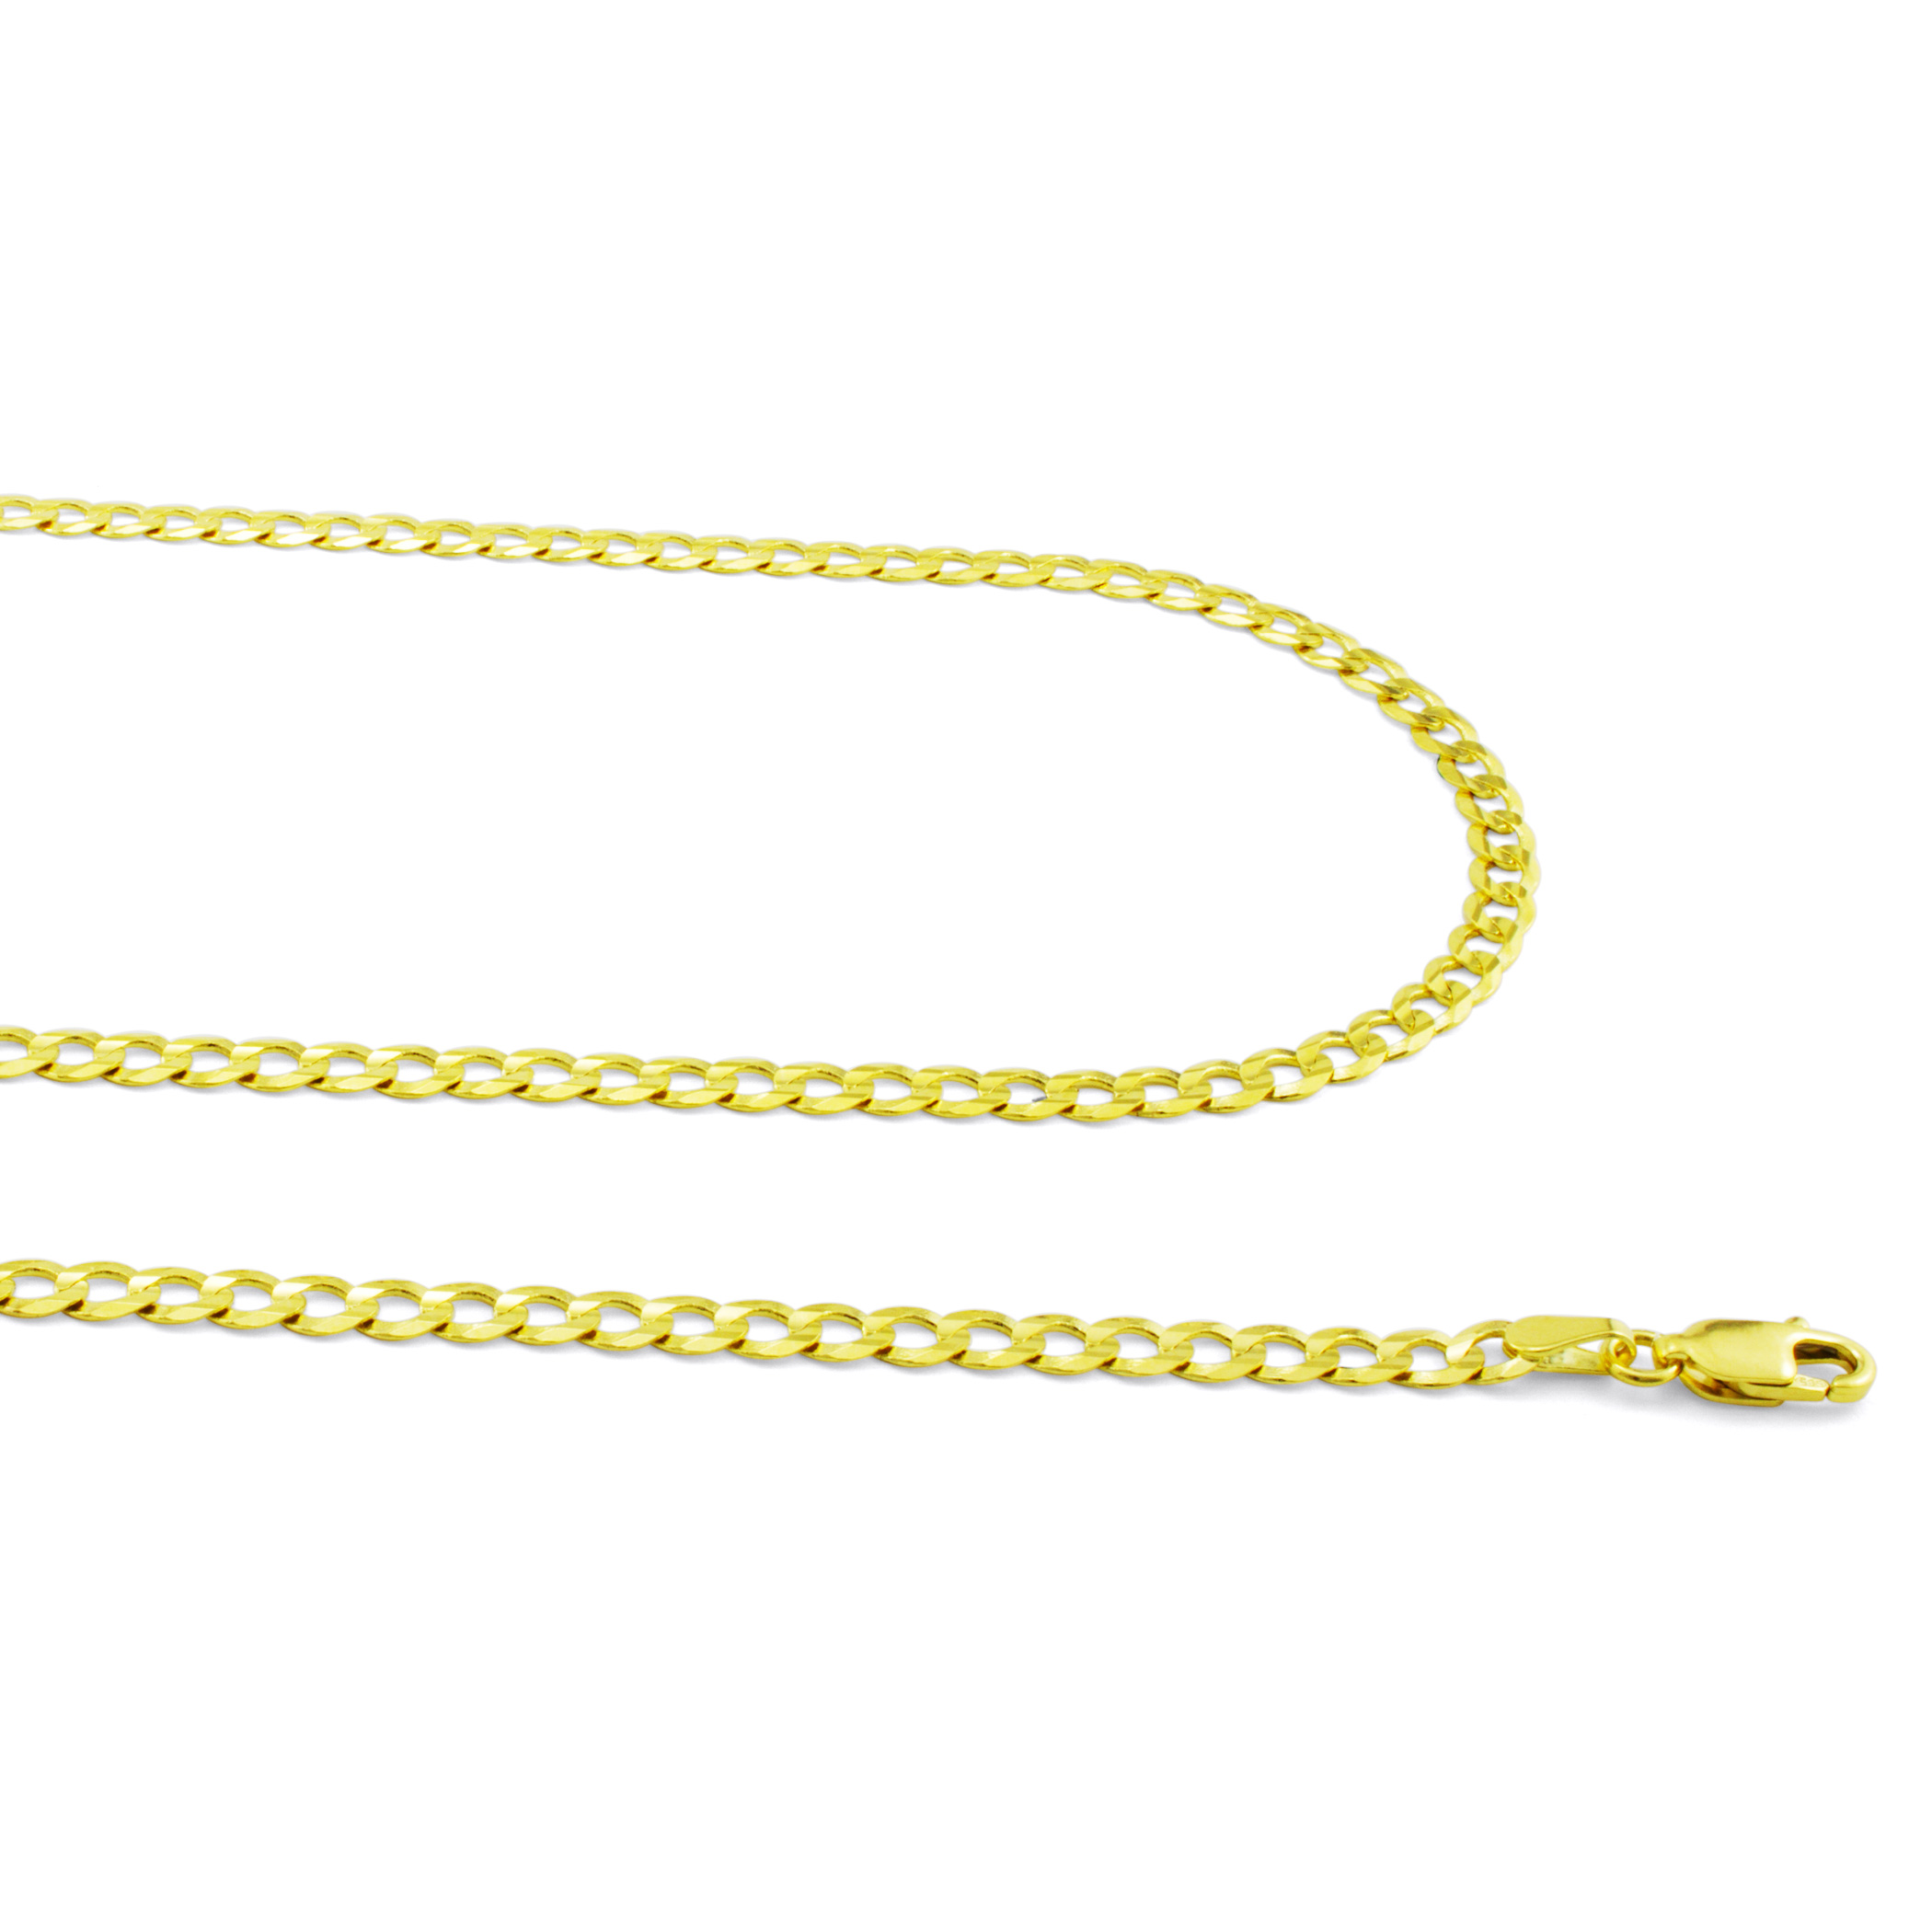 14K-Solid-Yellow-Gold-4mm-Cuban-Curb-Chain-Link-Bracelet-Lobster-Clasp-7-034-8-034-9-034 thumbnail 24